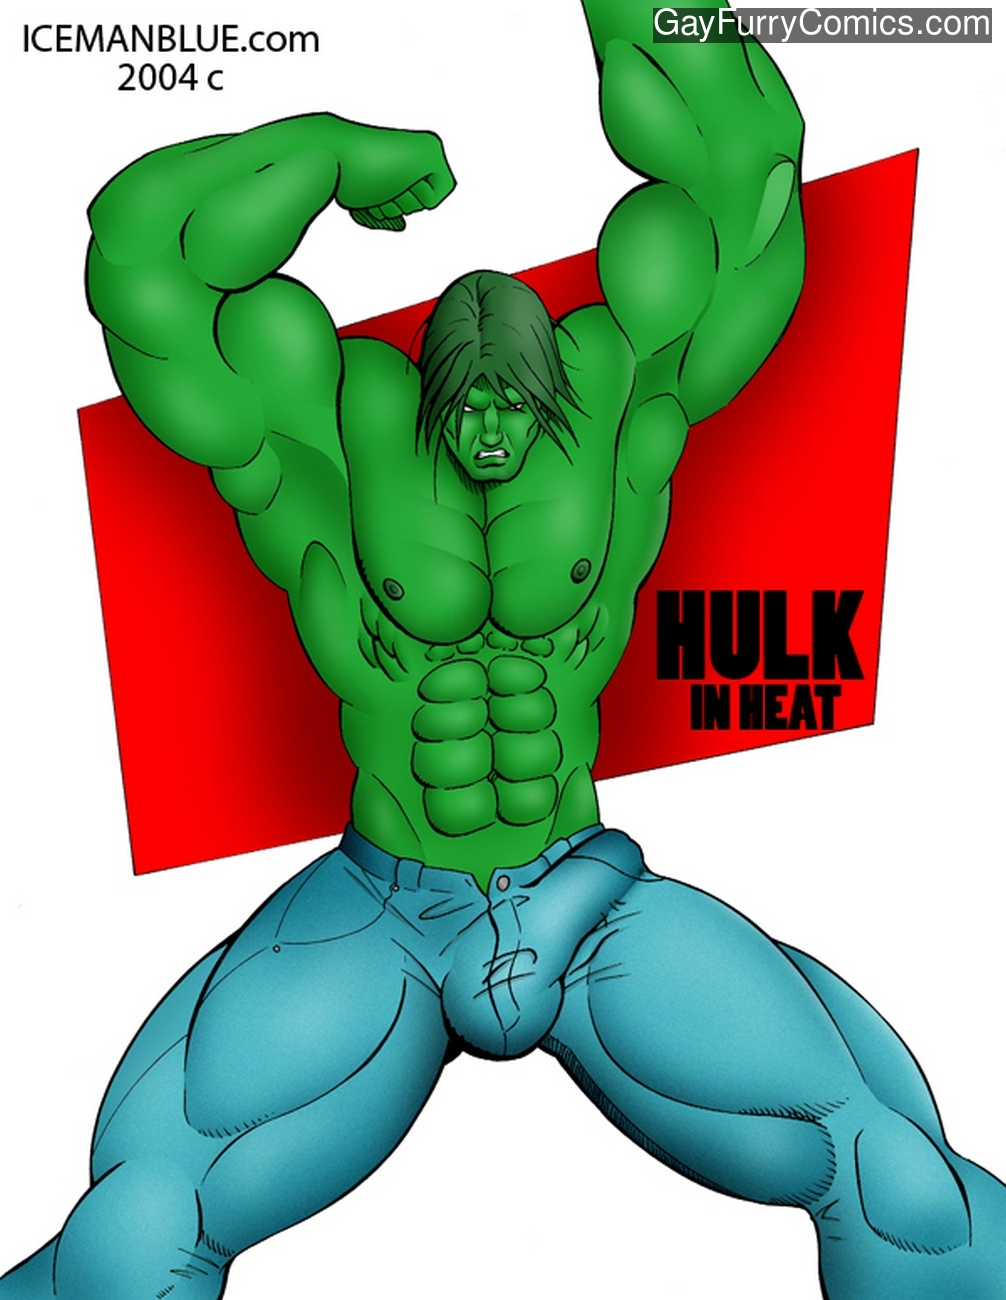 Hulk In Heat gay furry comic